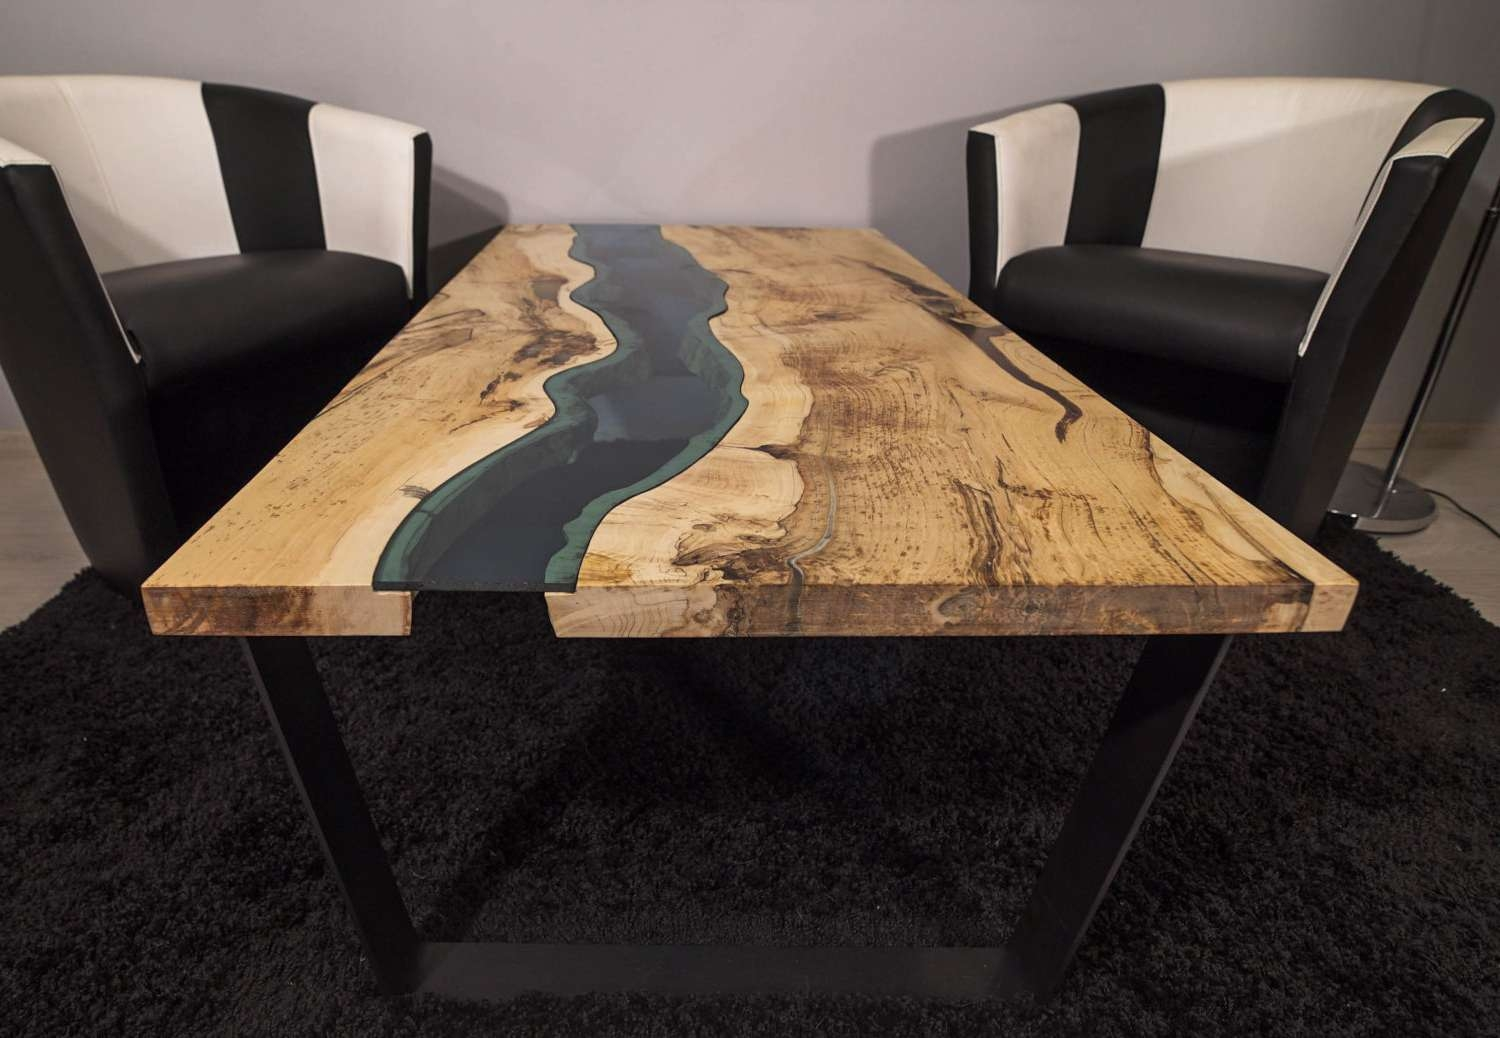 Sold Live Edge River Coffee Table Sold Regarding Current Live Edge Coffee Tables (View 5 of 20)